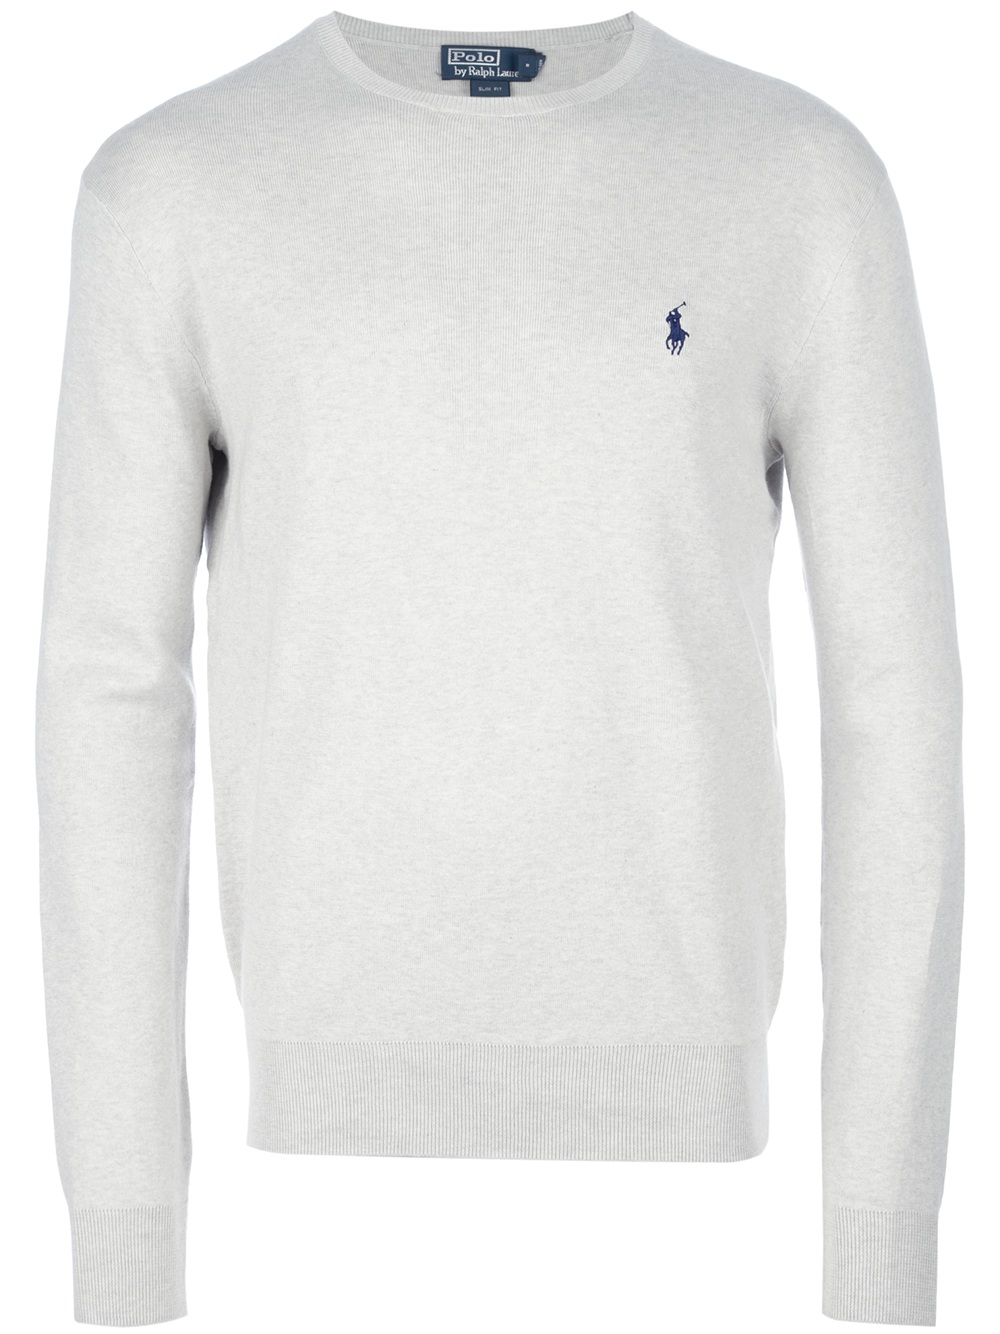 4bf57360f Polo Ralph Lauren Crew Neck Sweater in White for Men - Lyst